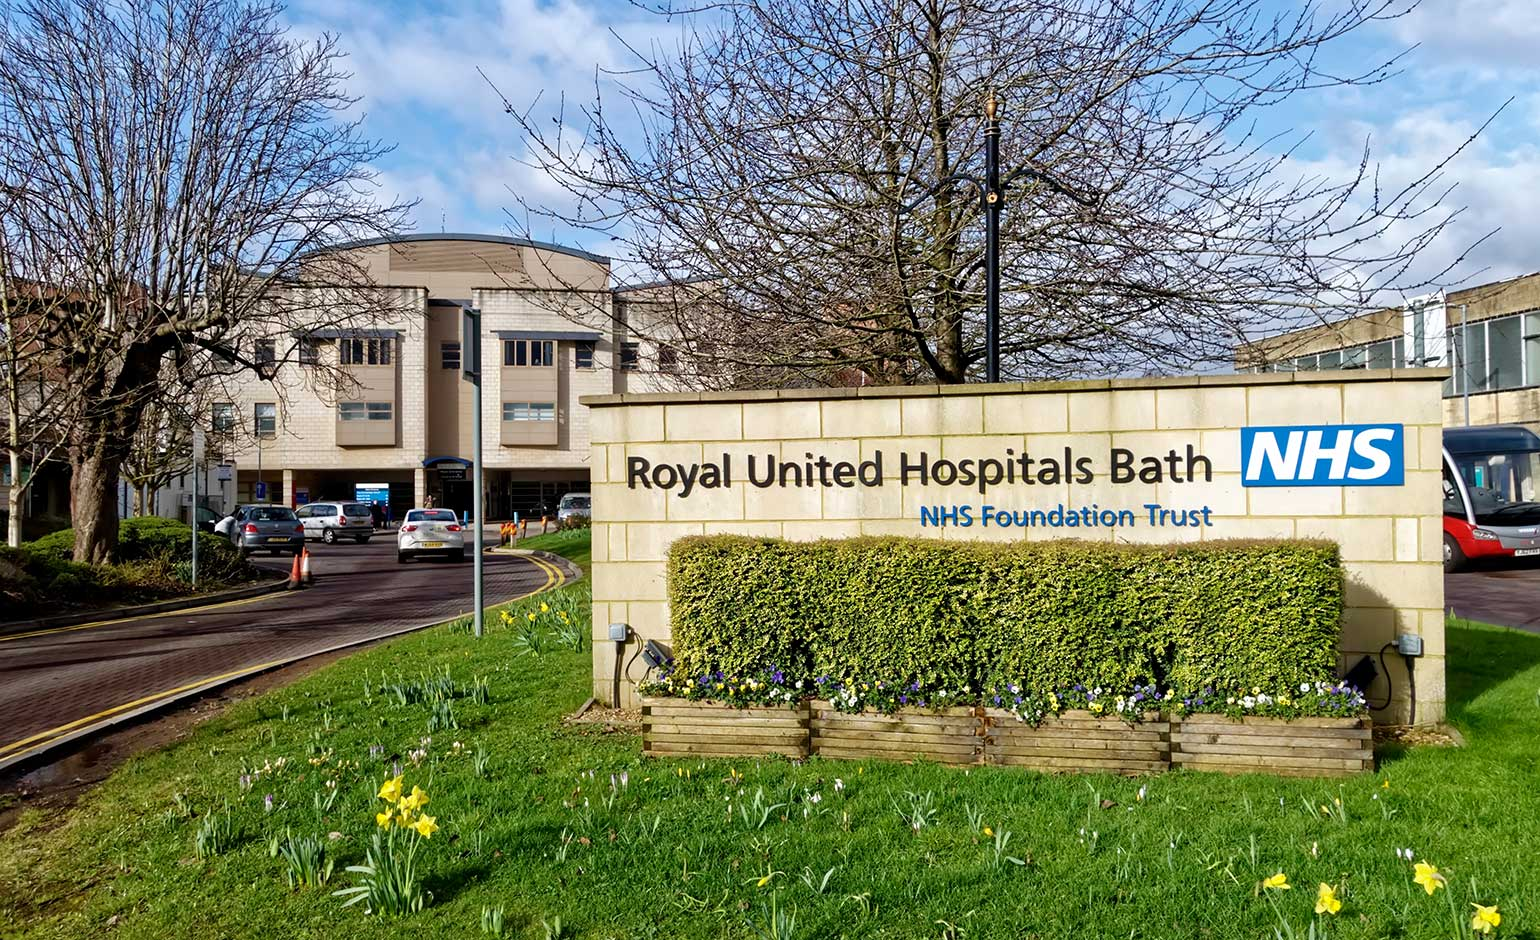 RUH postpones elective operations as COVID-19 pressures increase